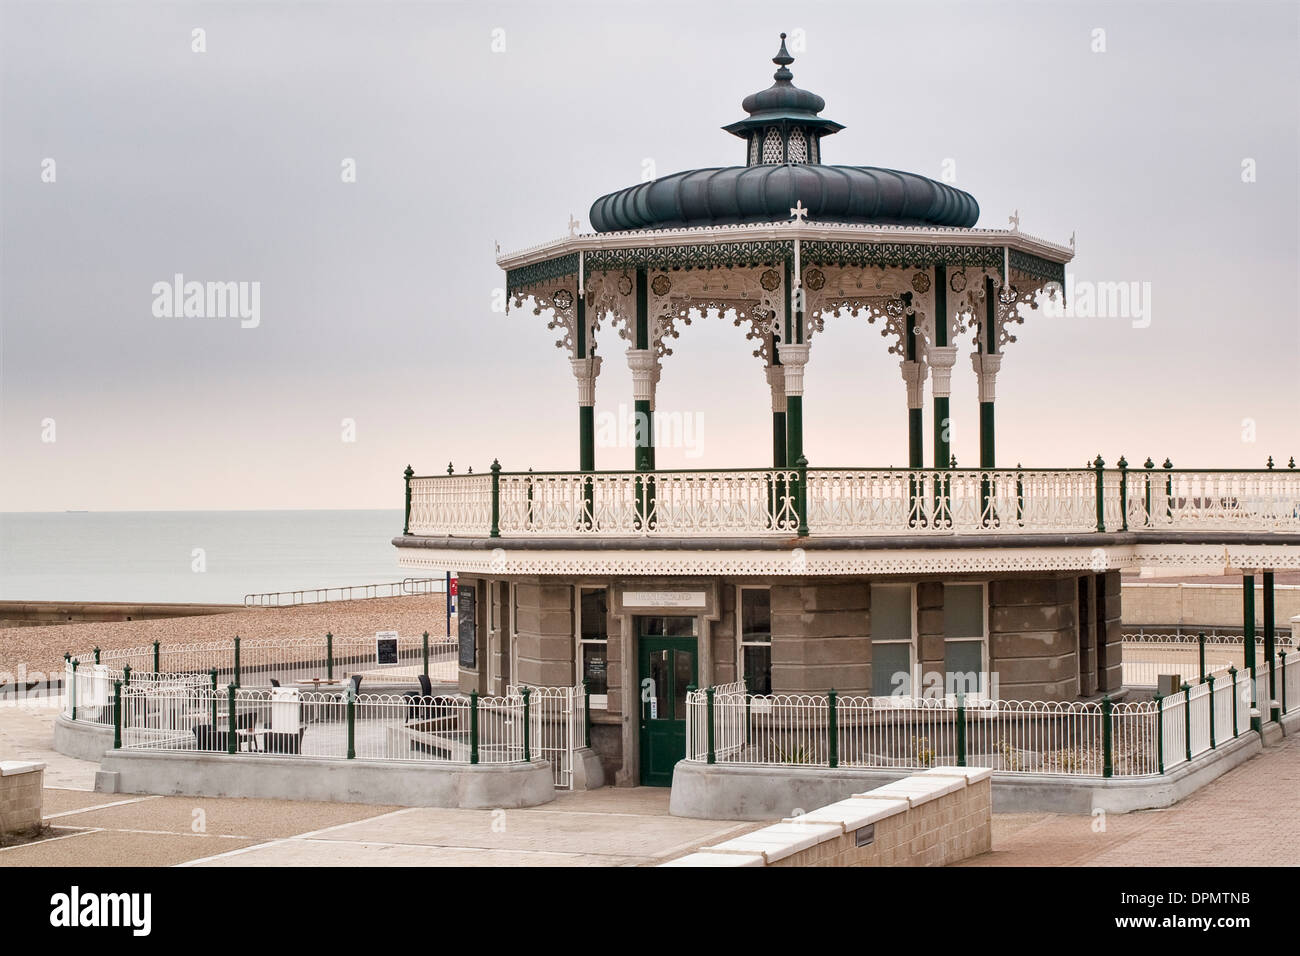 King's Road Bandstand Brighton Victorian cast iron Promenade structure - Stock Image